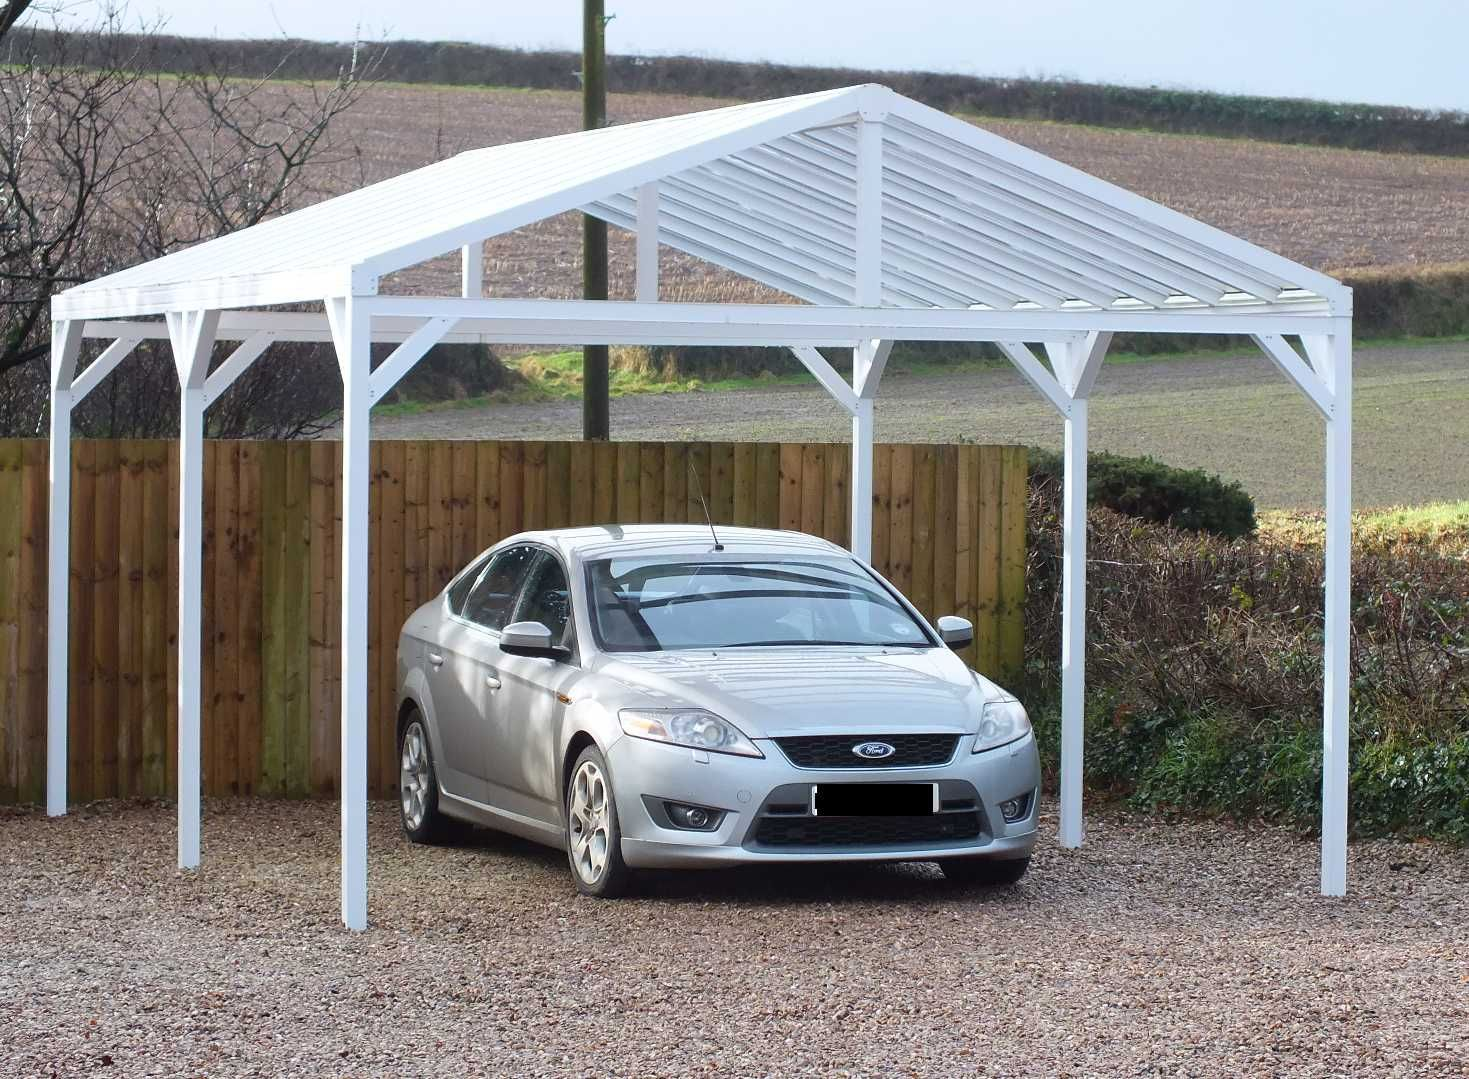 A Free Standing Gable Roof Canopy Note The Structural Knee Braces To Give The Structure Lateral Stability Diy Canopy Canopy Bedroom Patio Canopy